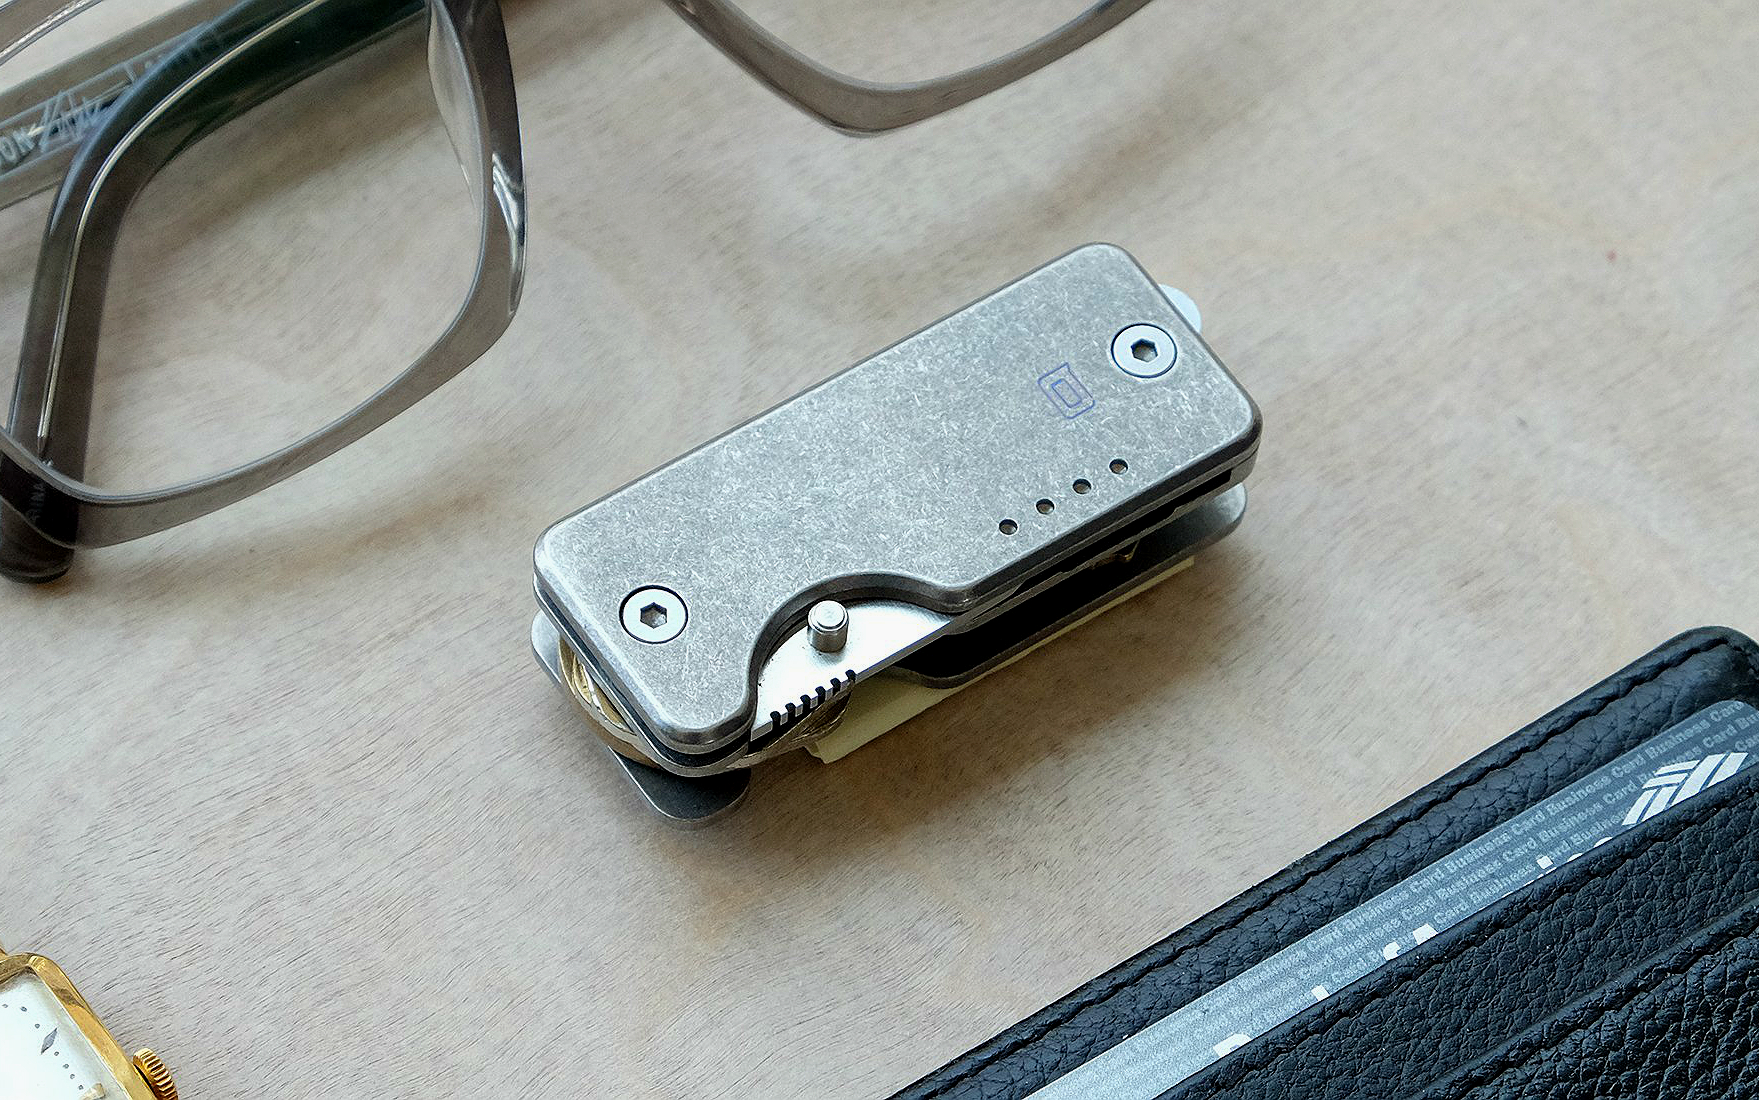 The Shorty Titanium Knife + Key Organizer